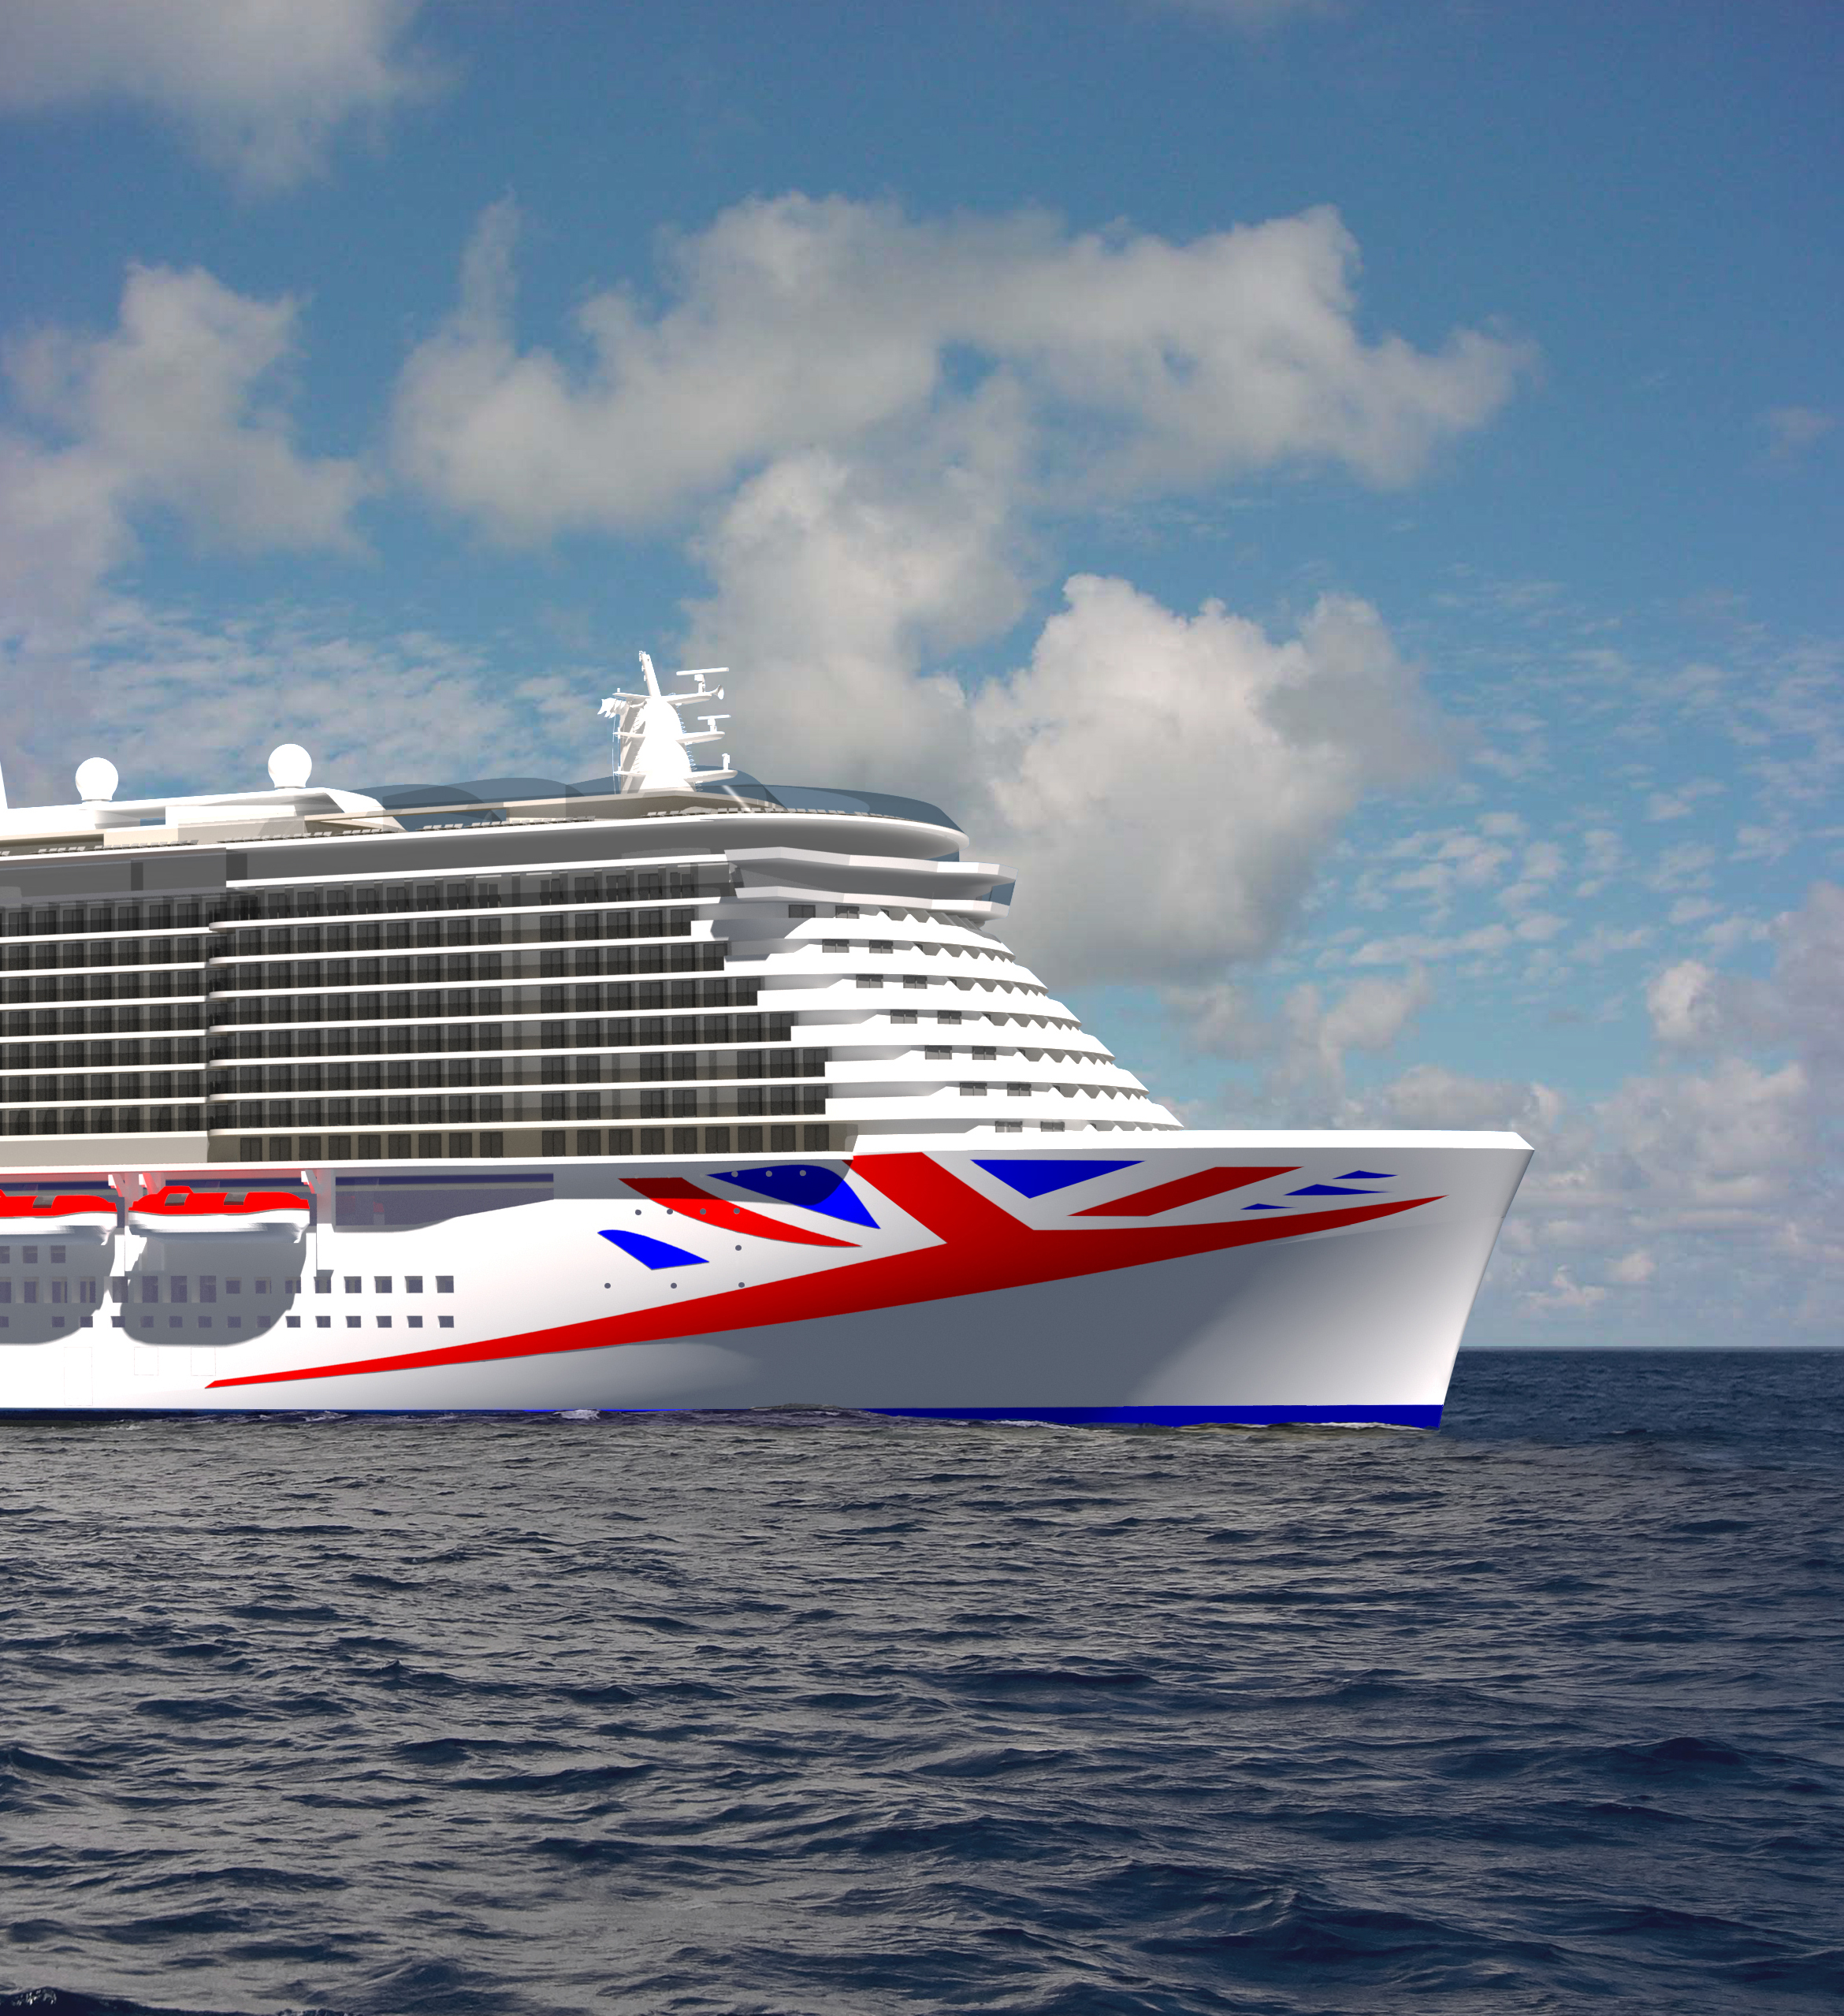 Newest Cruise Ships 2020.New Cruise Ship To Join P O Cruises Fleet In 2020